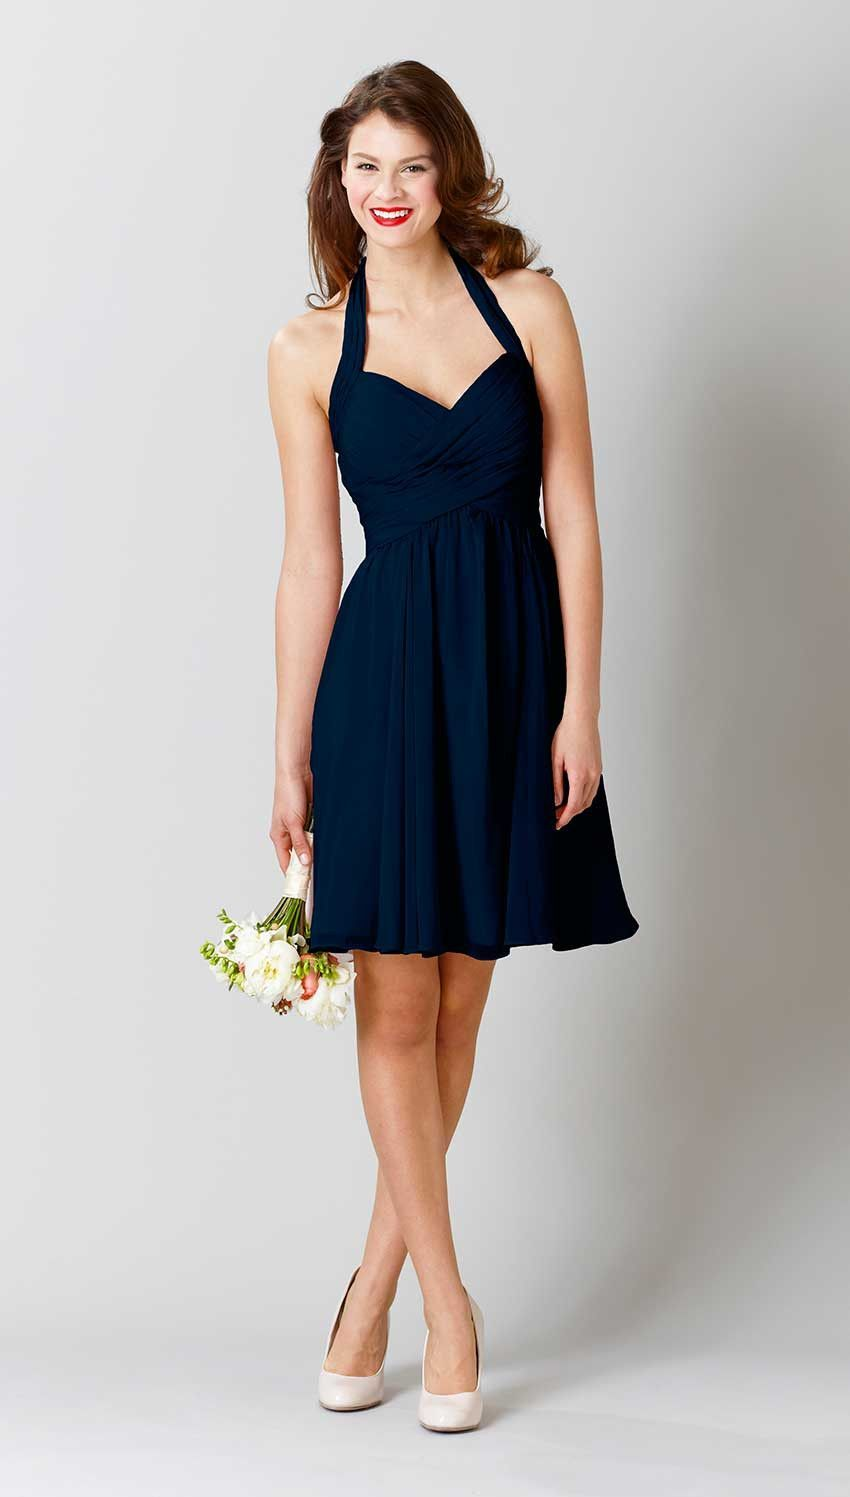 Lucy chiffon bridesmaid dresses bridal gowns and gowns